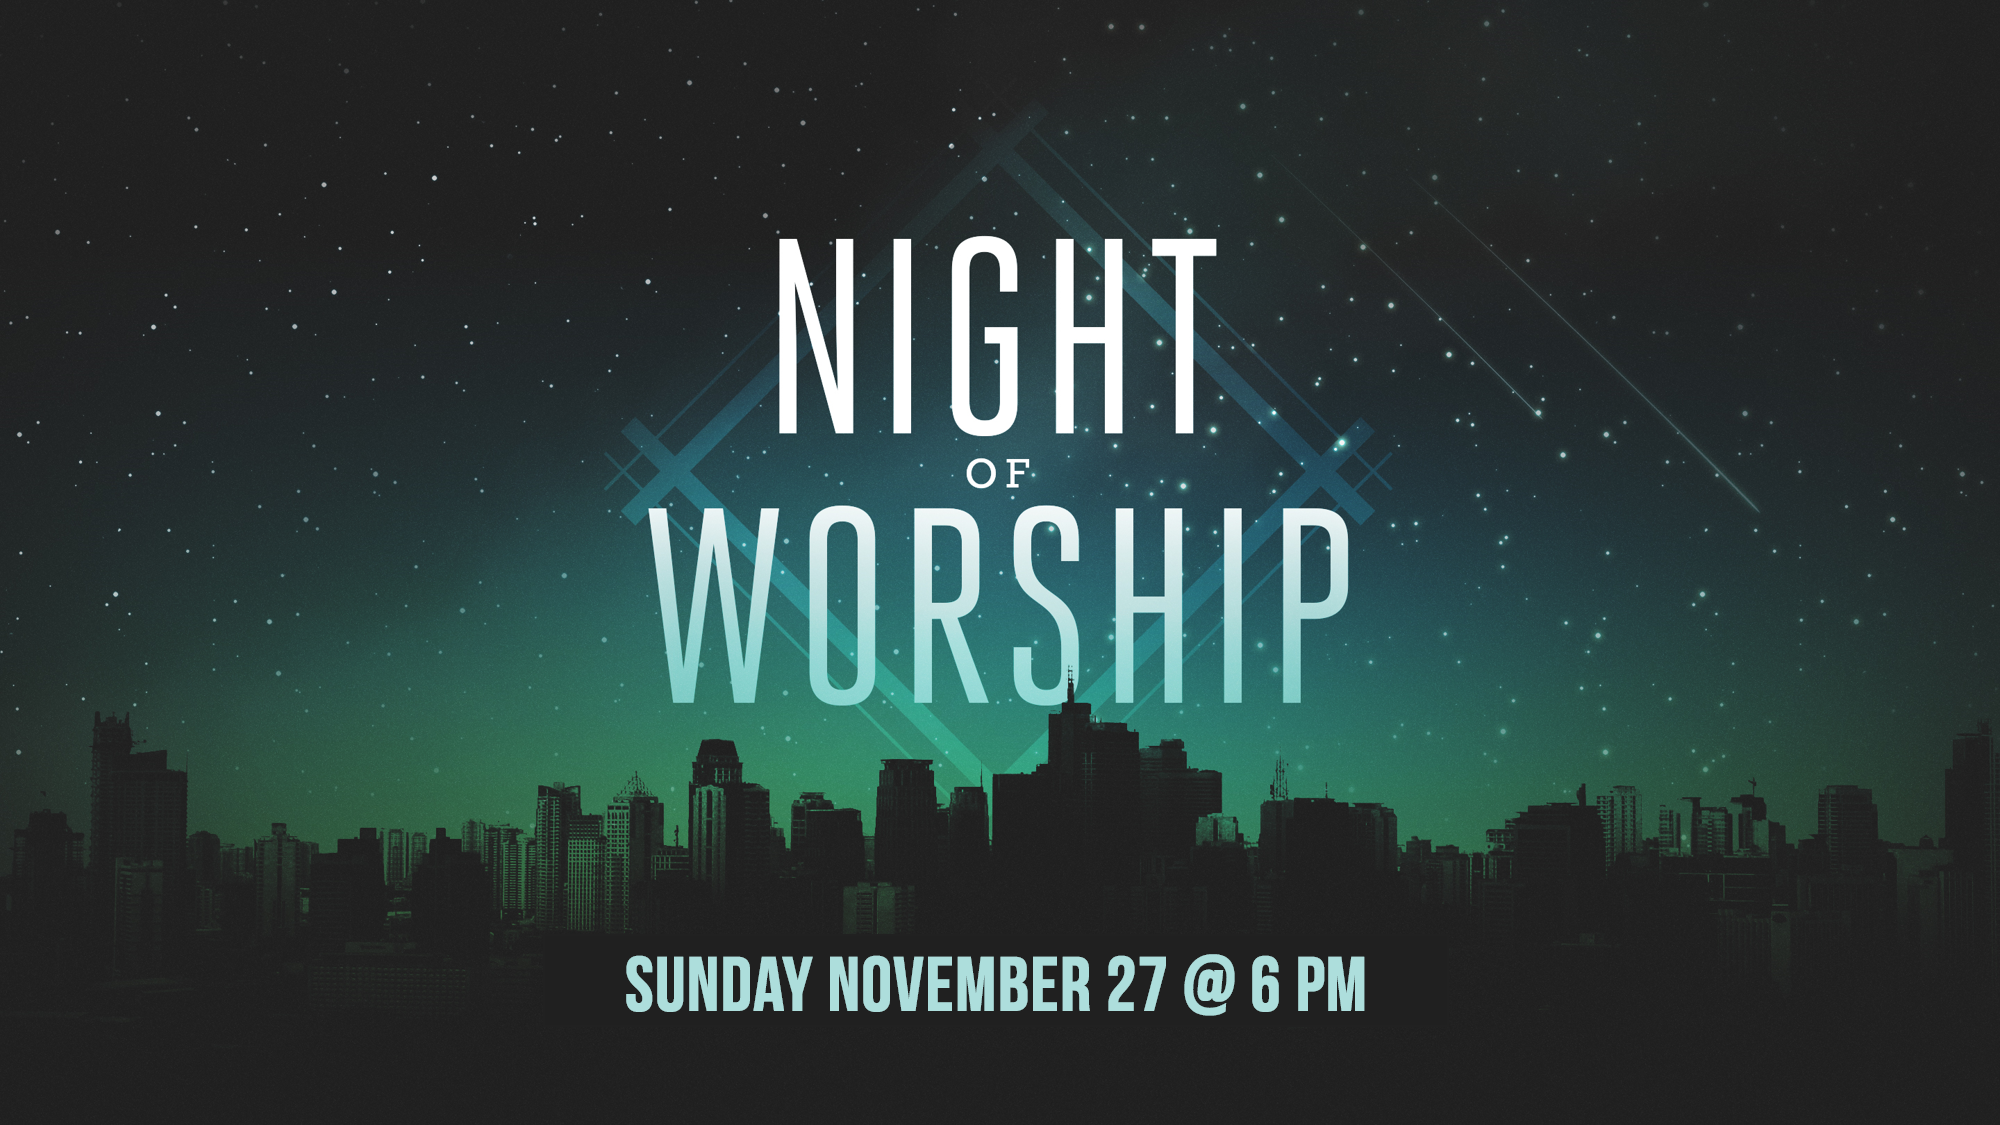 Everyone is welcome as we come together for a night of worship to our God. Come expecting!